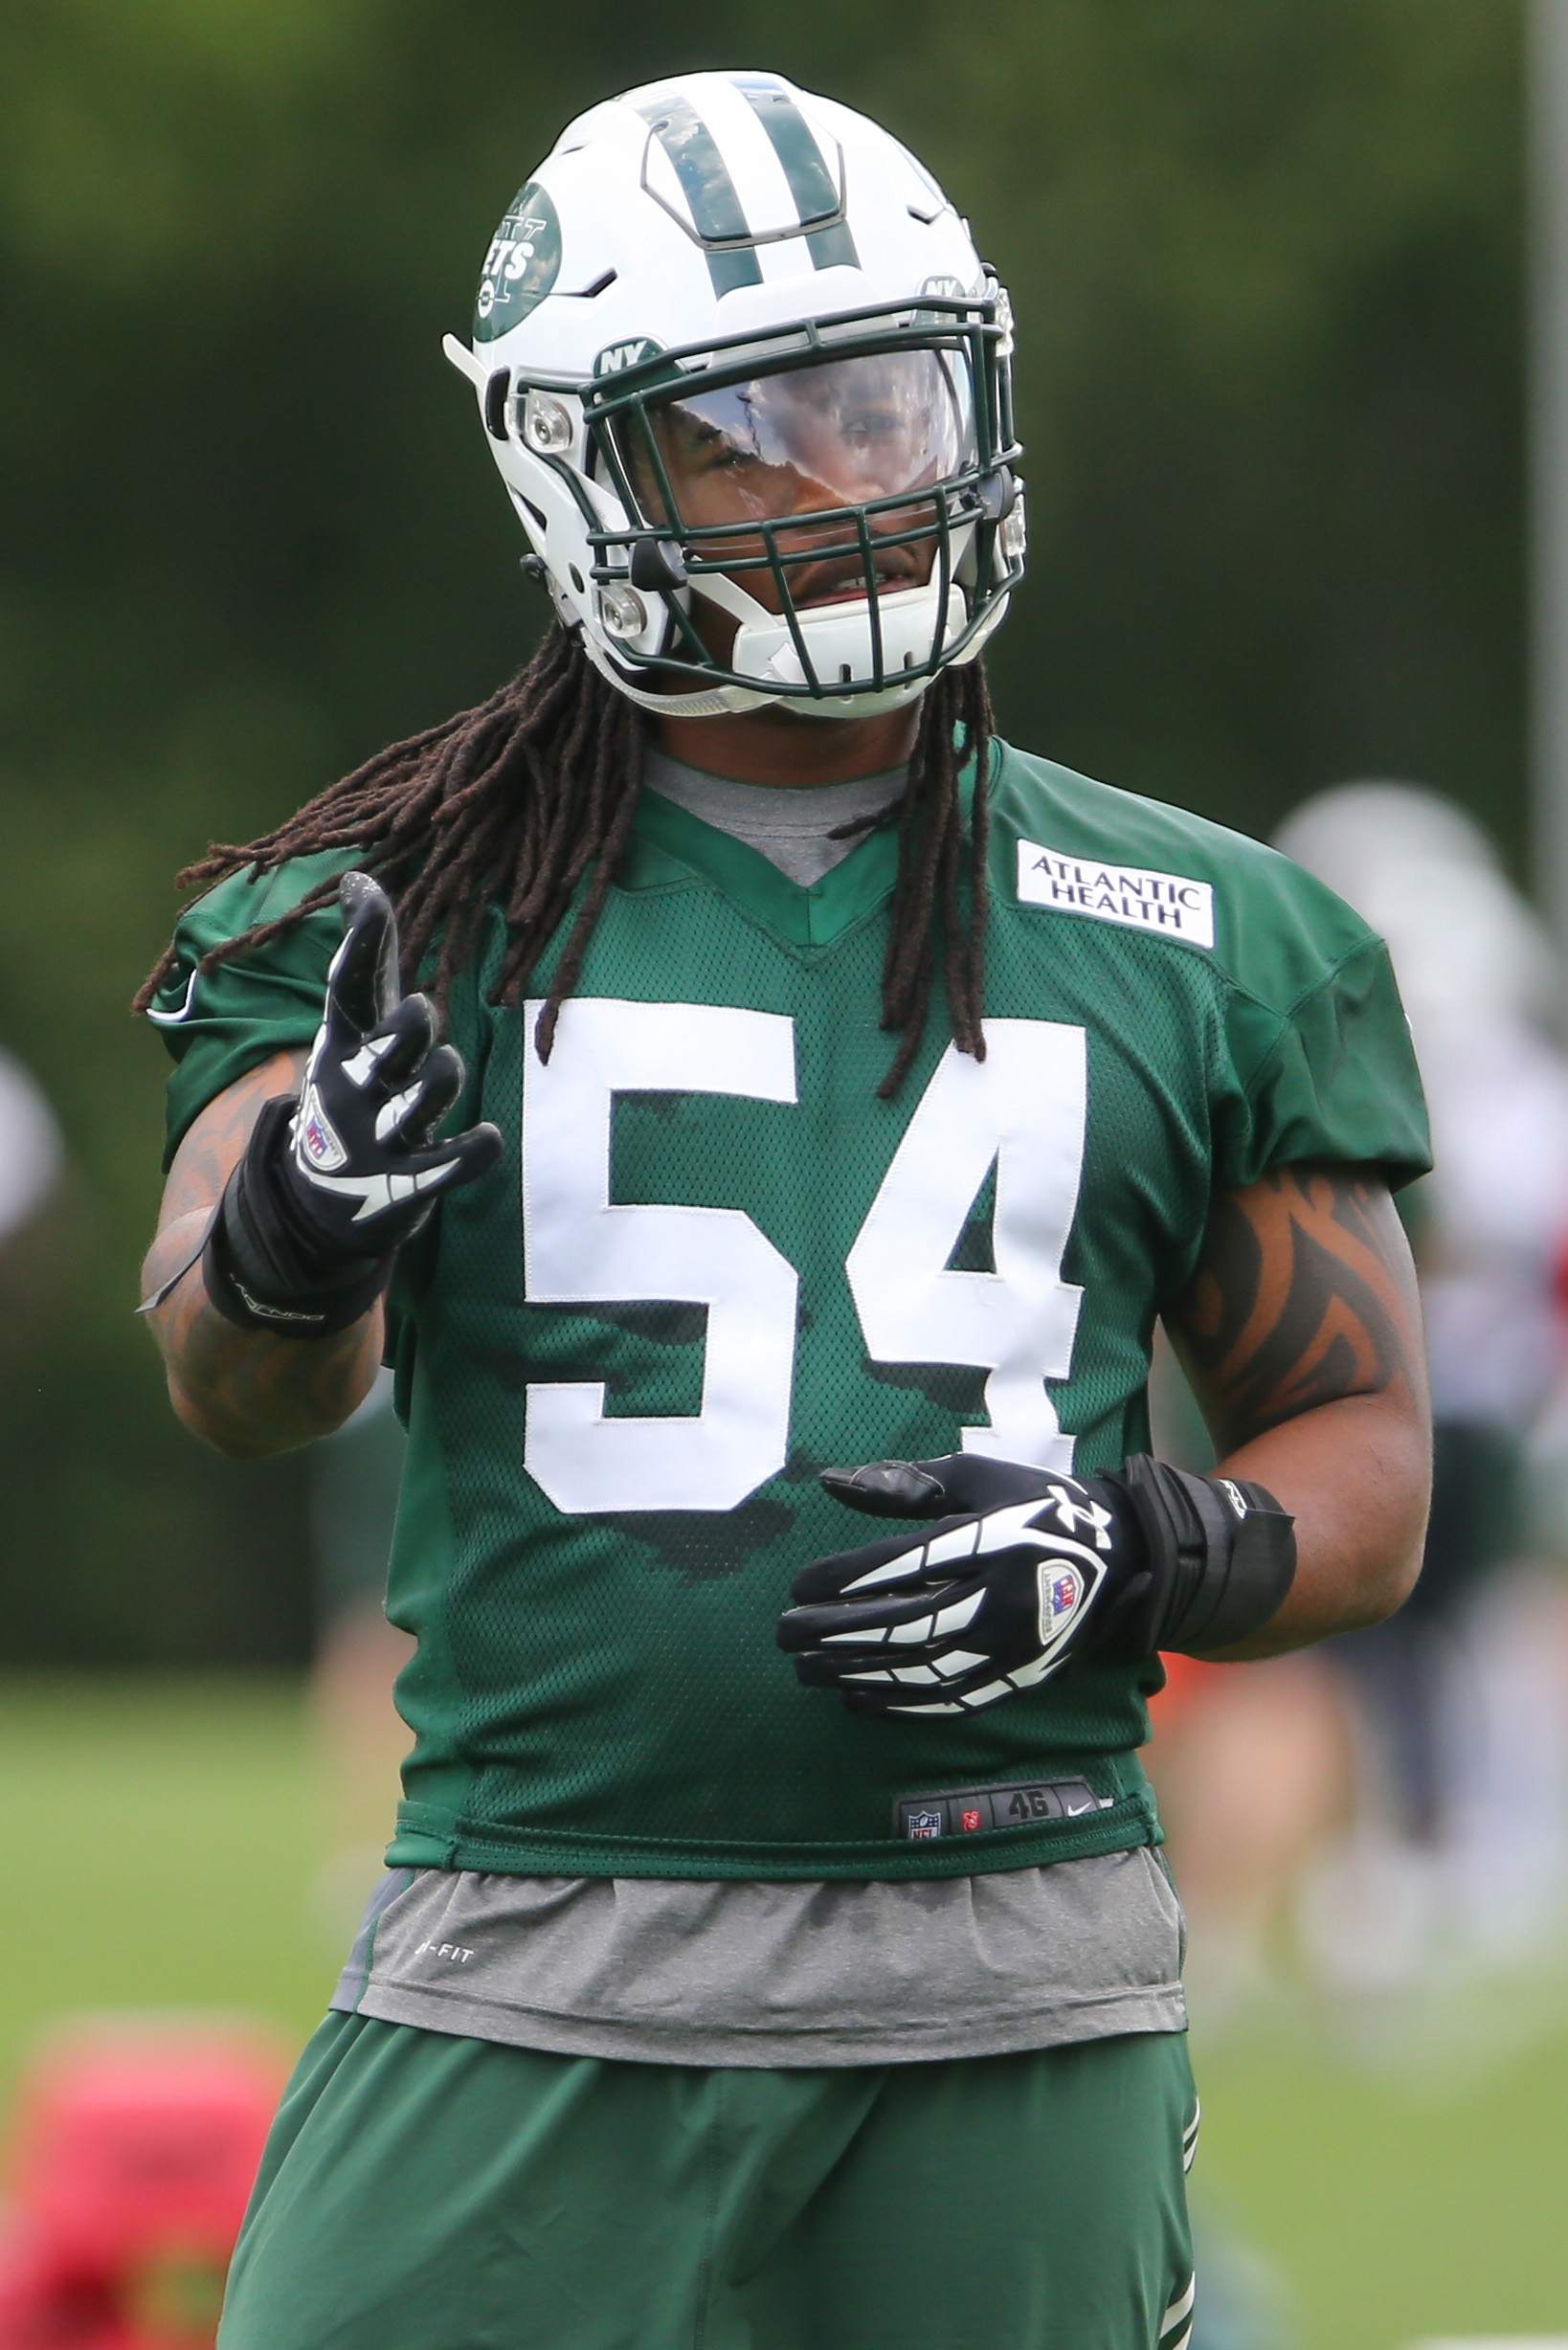 Jun 9, 2015; Florham Park, NJ, USA; New York Jets linebacker Jamari Lattimore (54) during New York Jets minicamp at Atlantic Health Jets Training Center. Mandatory Credit: Ed Mulholland-USA TODAY Sports